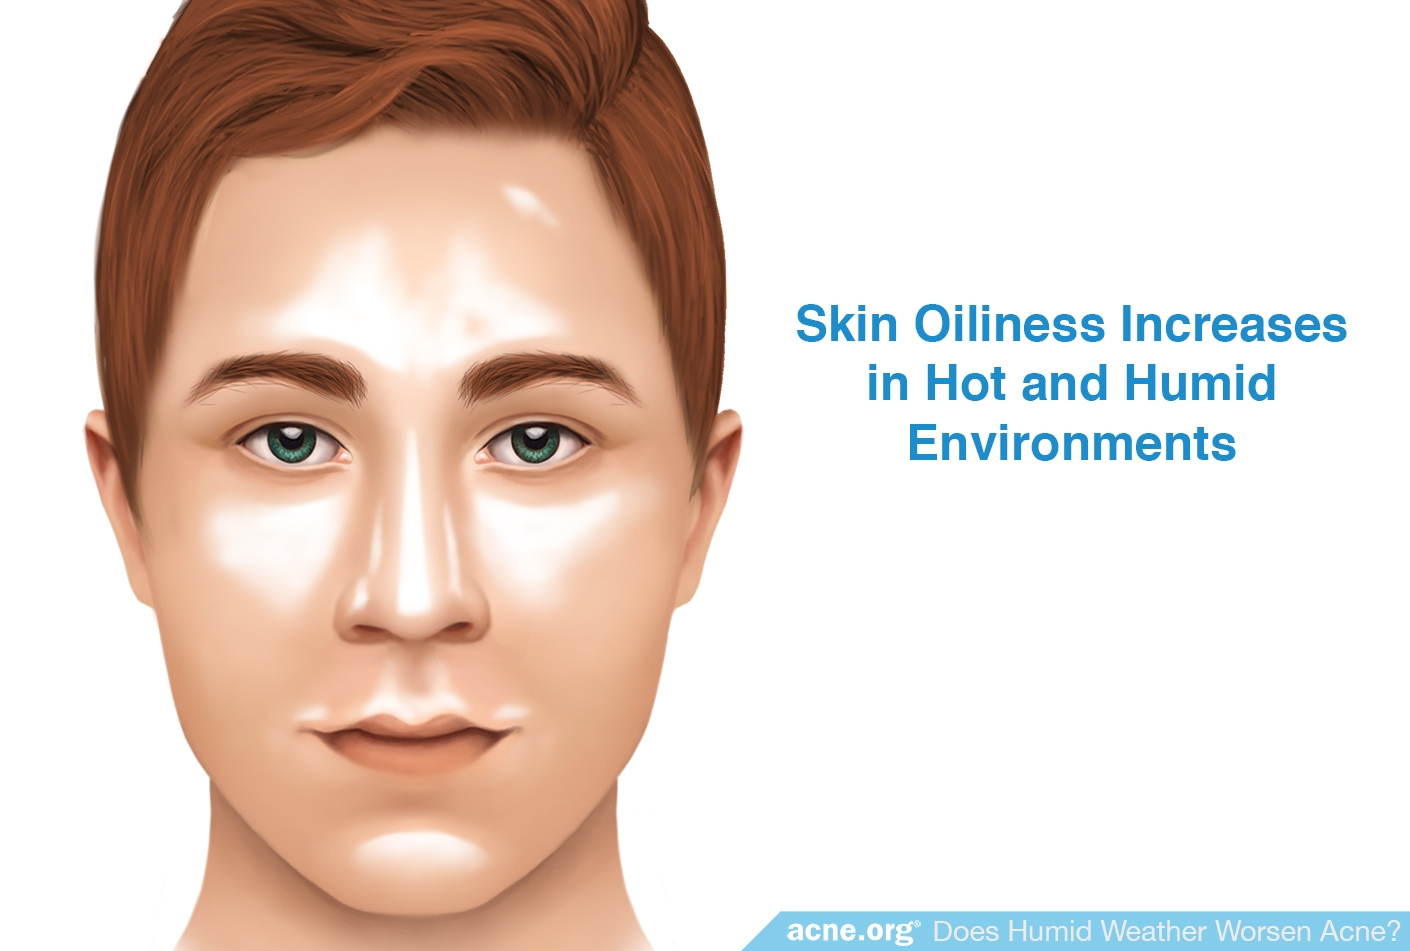 Skin Oiliness Increases in Hot and Humid Environments